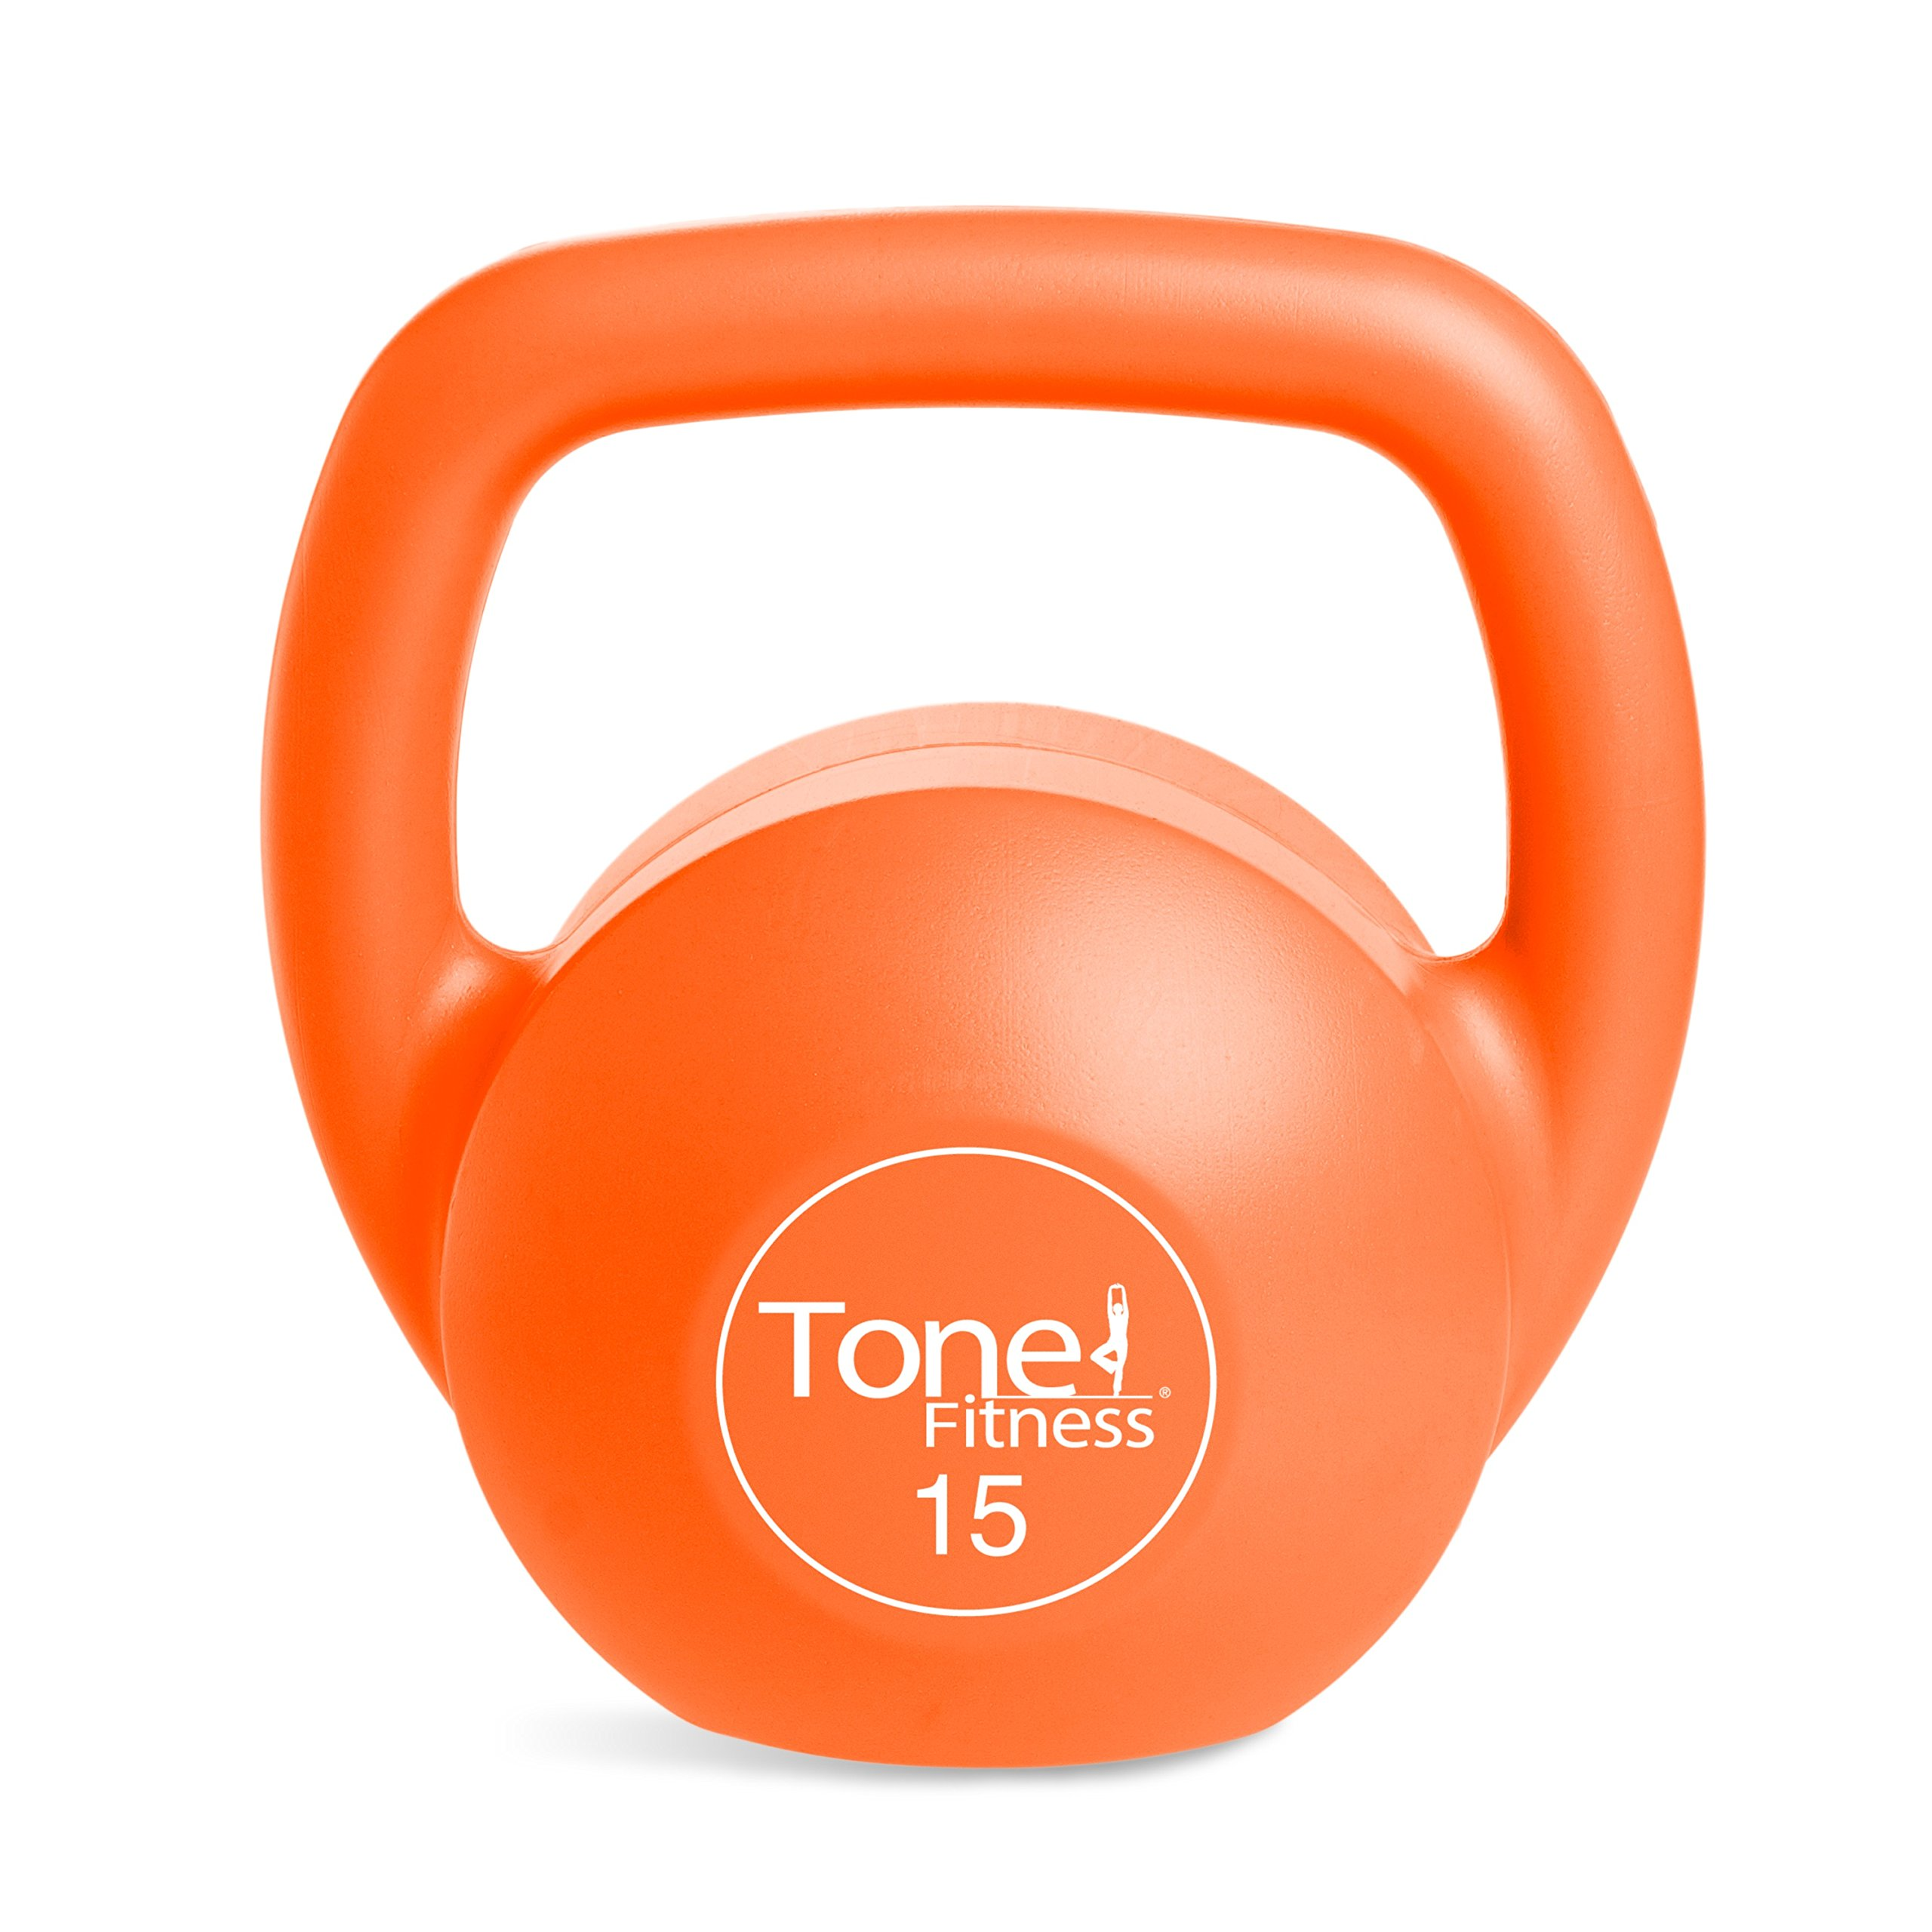 Tone Fitness Vinyl Kettlebell, 15-Pound, Orange by Tone Fitness (Image #2)